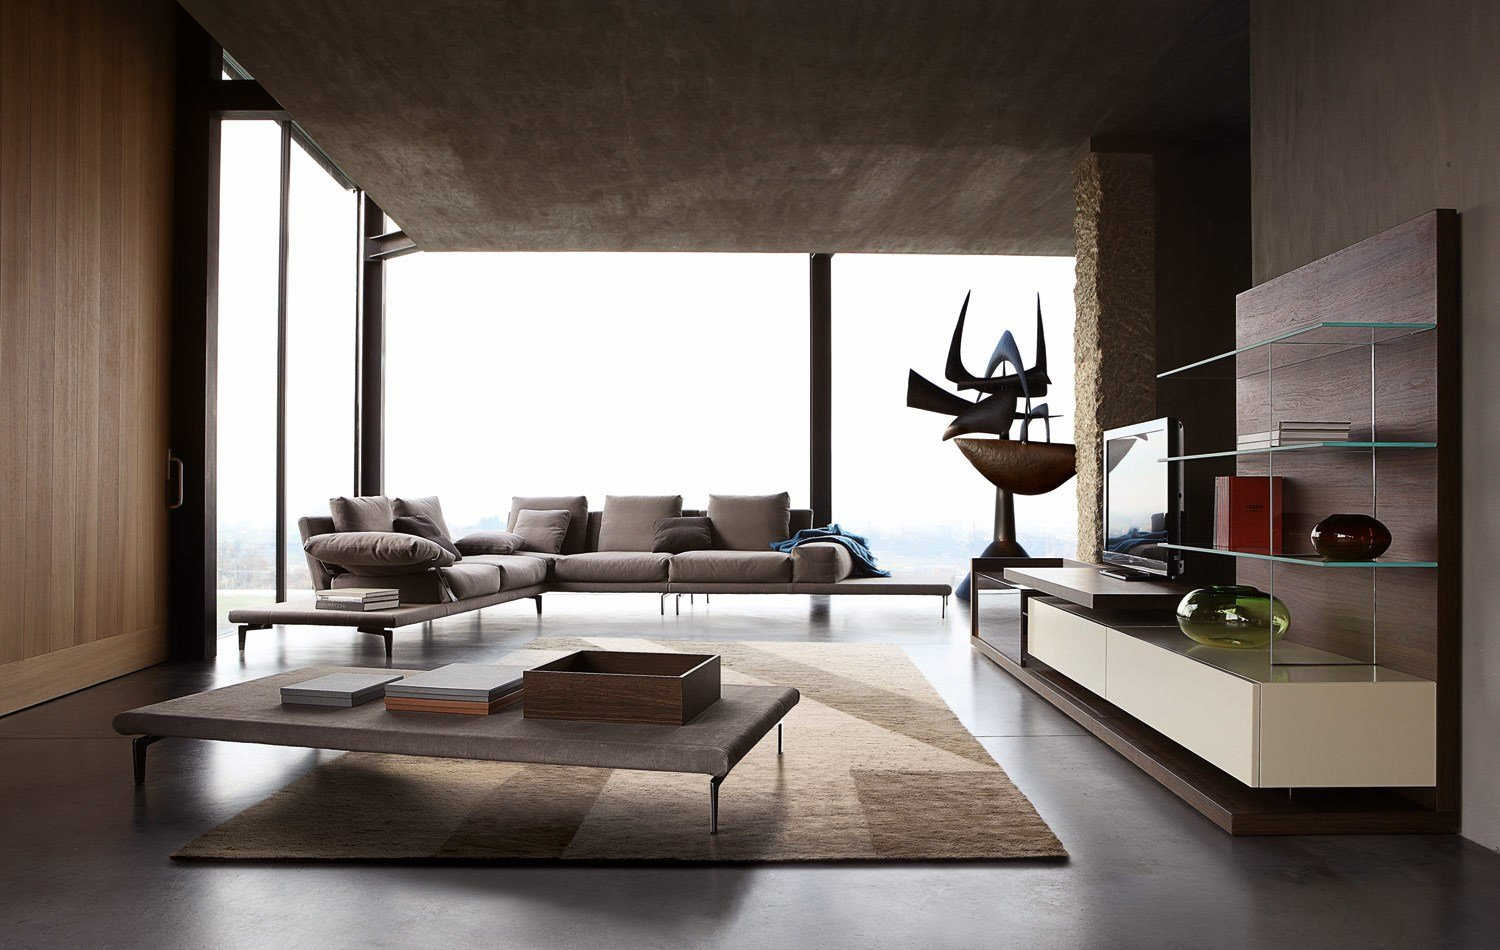 Sectional modular sofa echoes by roche bobois design mauro for Comedor minimalista